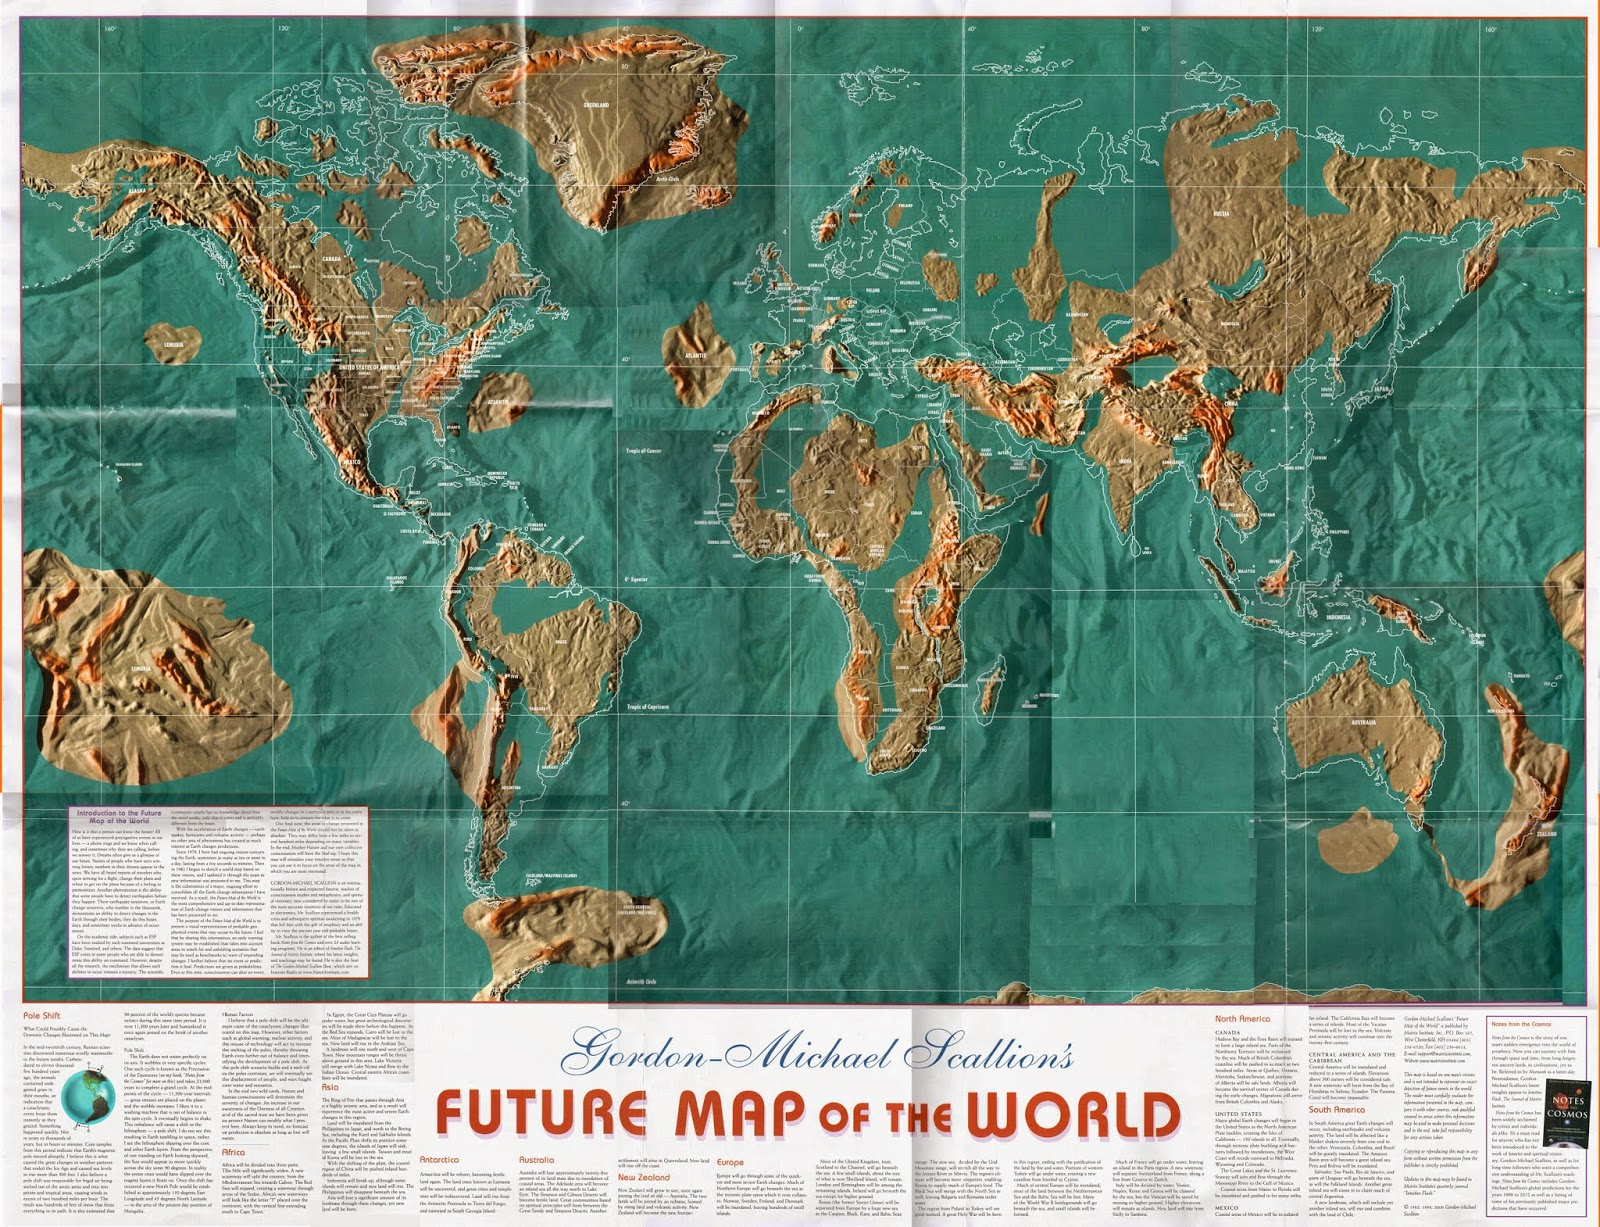 US NAVY MAP of the FUTURE is this NOW THE REAL SIGNS OF TIMES